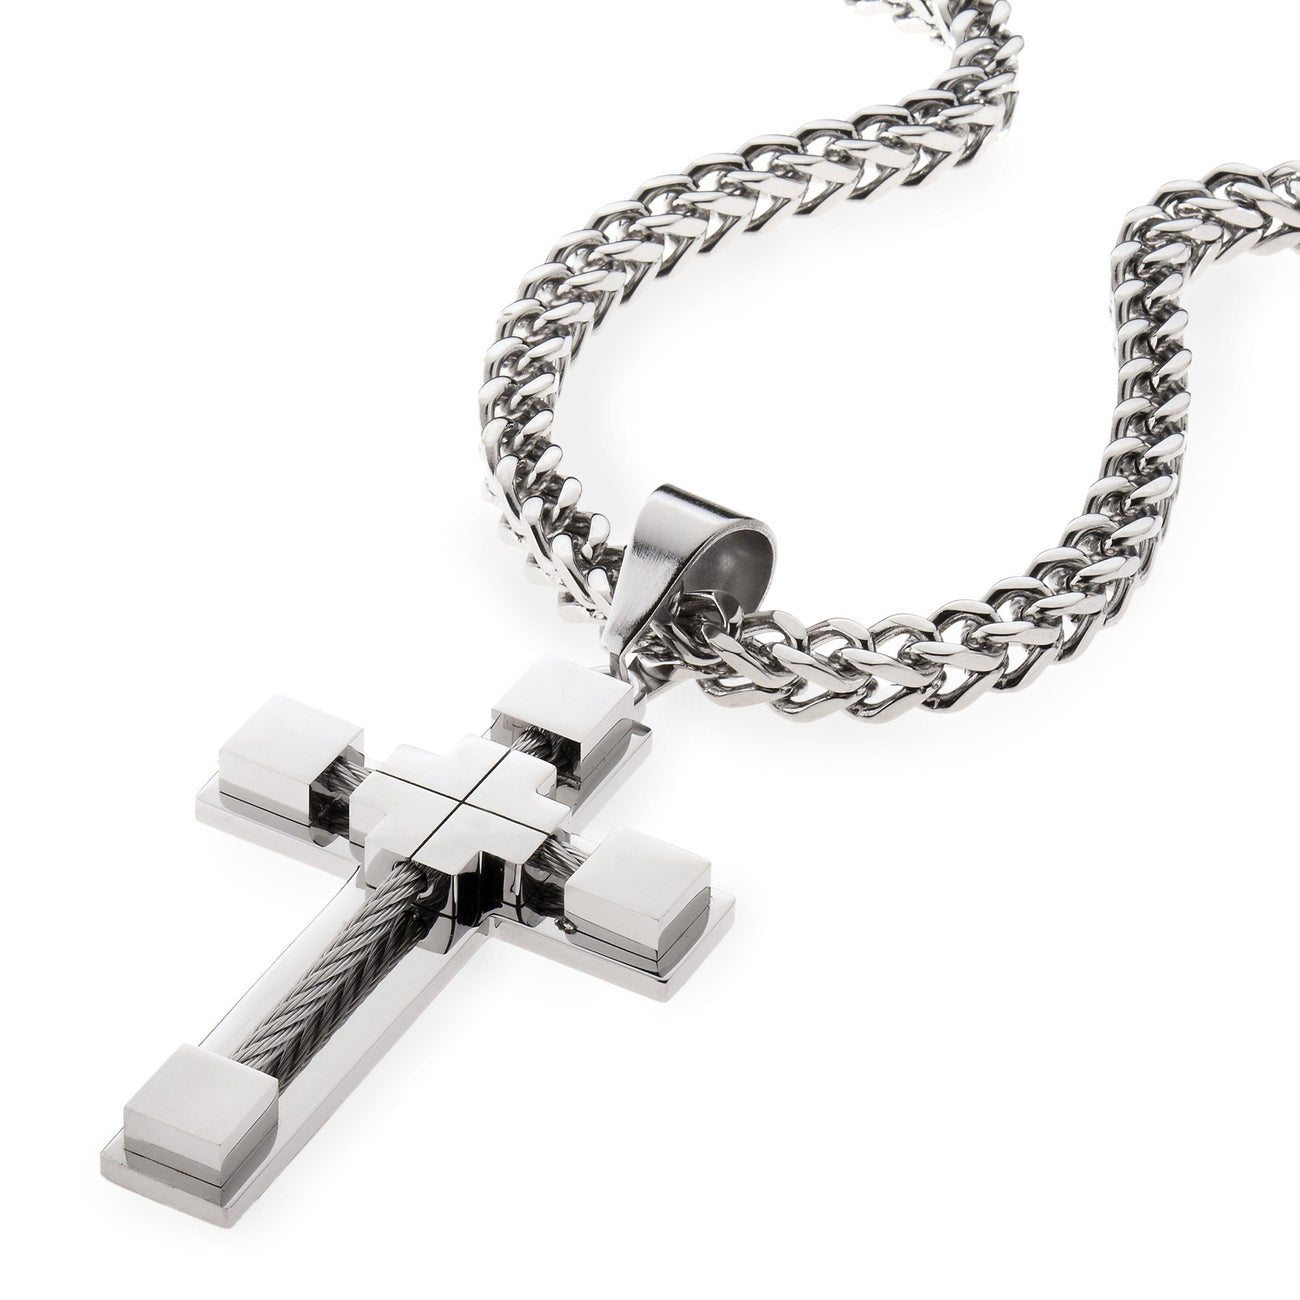 MEN's Stainless Steel 6mm Silver Cable Cross Pendant With Franco Chain , Necklace, SpicyIce - 1